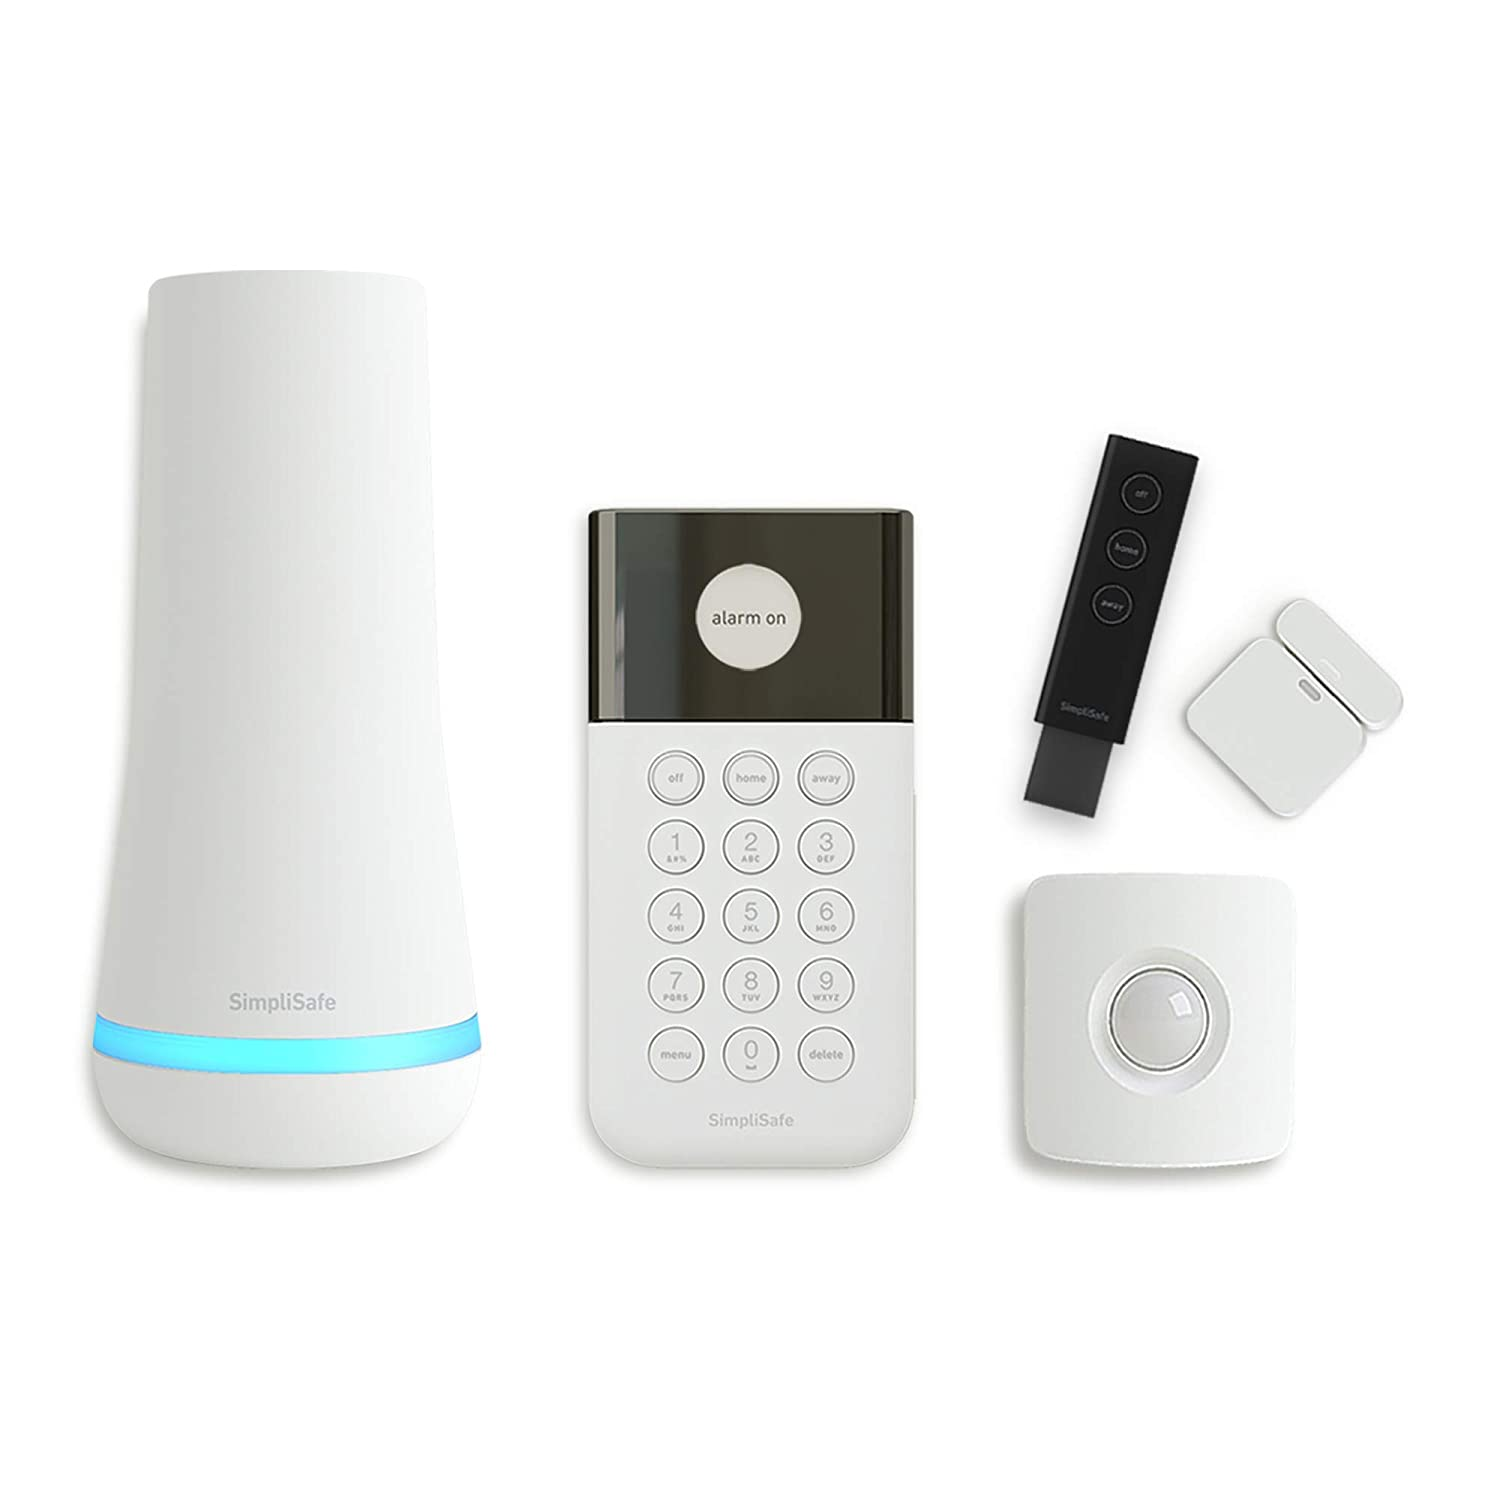 SimpliSafe 5 Piece Wireless Home Security System - Optional 24/7 Professional Monitoring - No Contract - Compatible with Alexa and Google Assistant